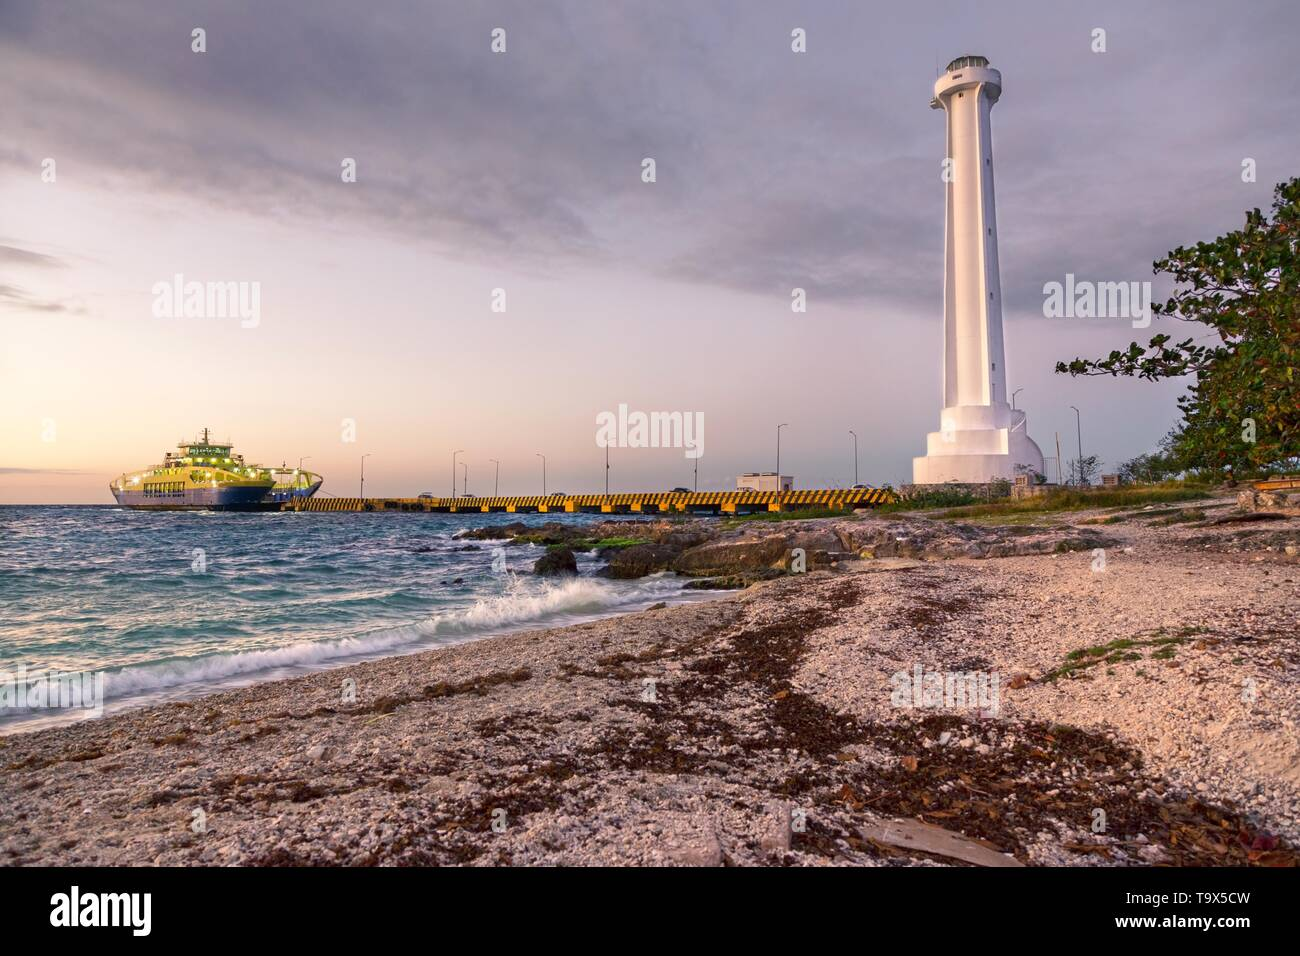 Dramatic Sunset Sky Colors over Caribbean Beach and Car Ferry Pier Lighthouse in Cozumel, Mexico Yucatan Peninsula Stock Photo